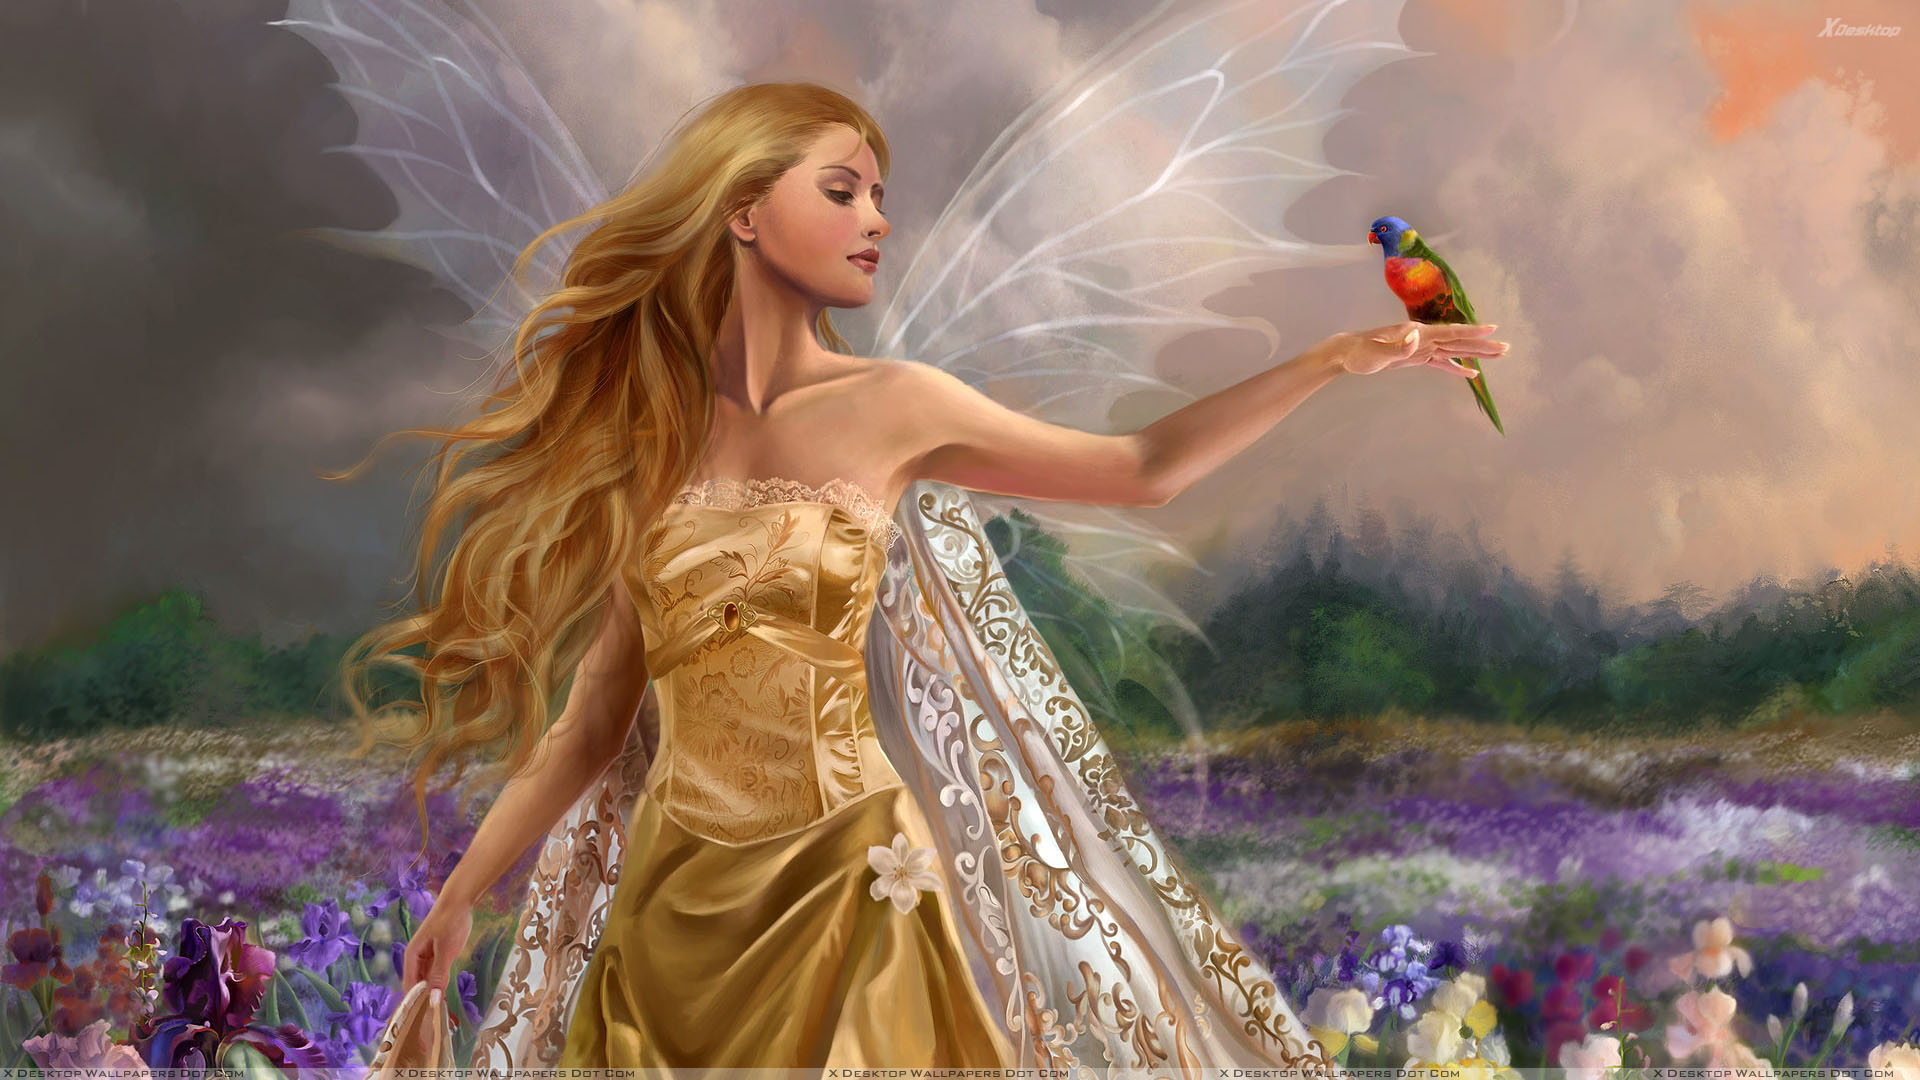 3d Girl In Golden Long Dress And Bird On Hand In Garden Wallpaper